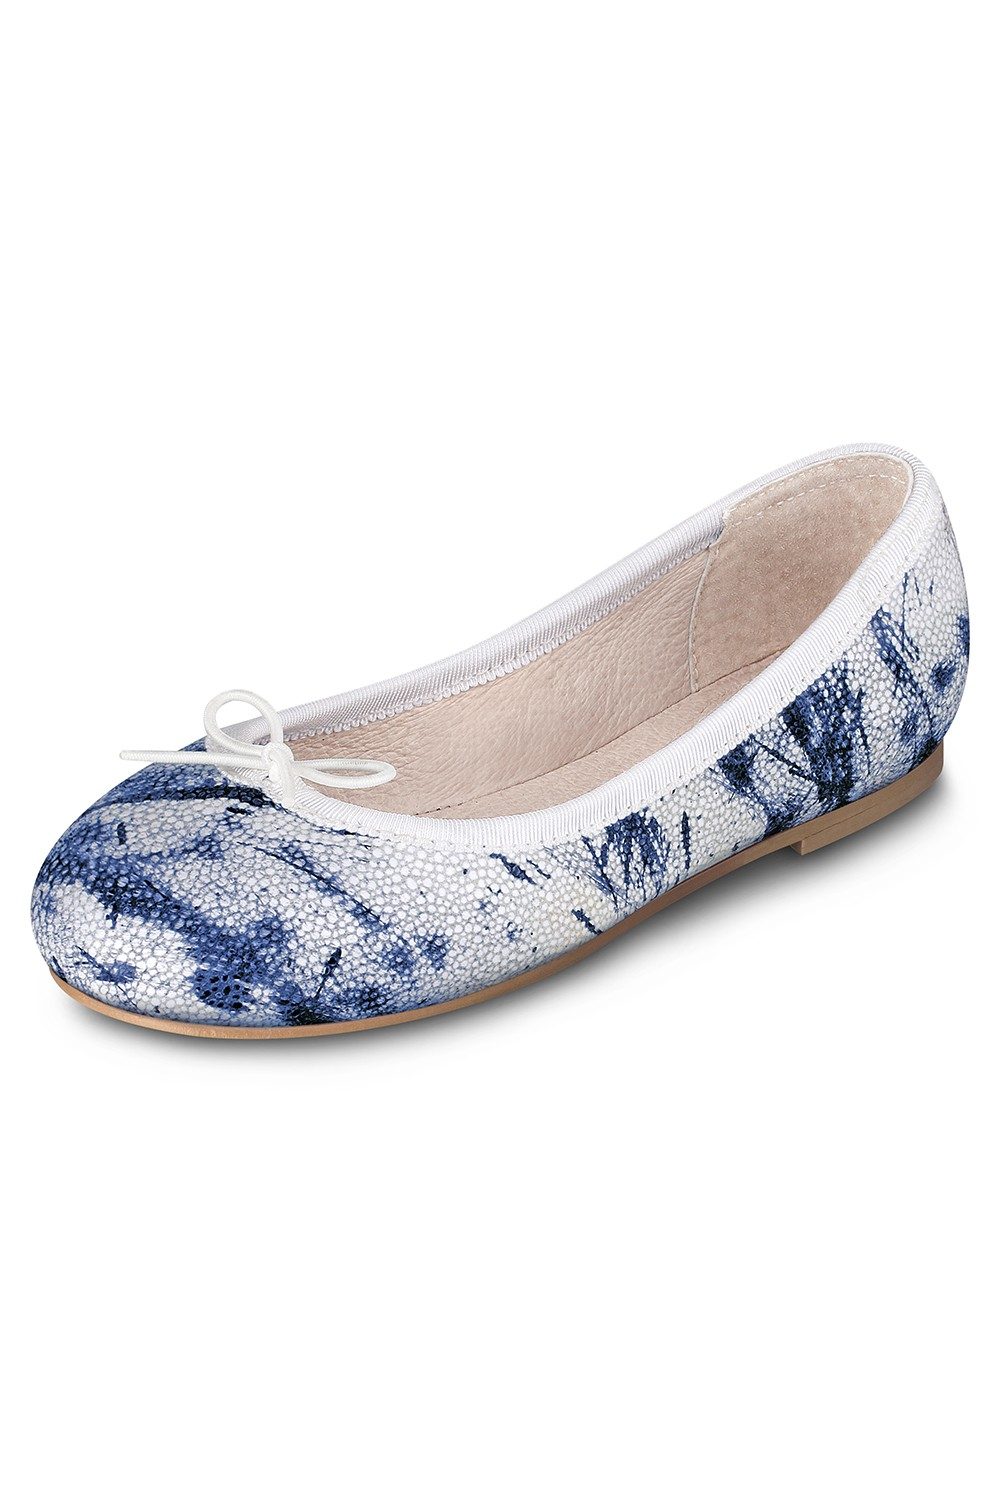 Belle Girls Ballet Flat Girls Fashion Shoes